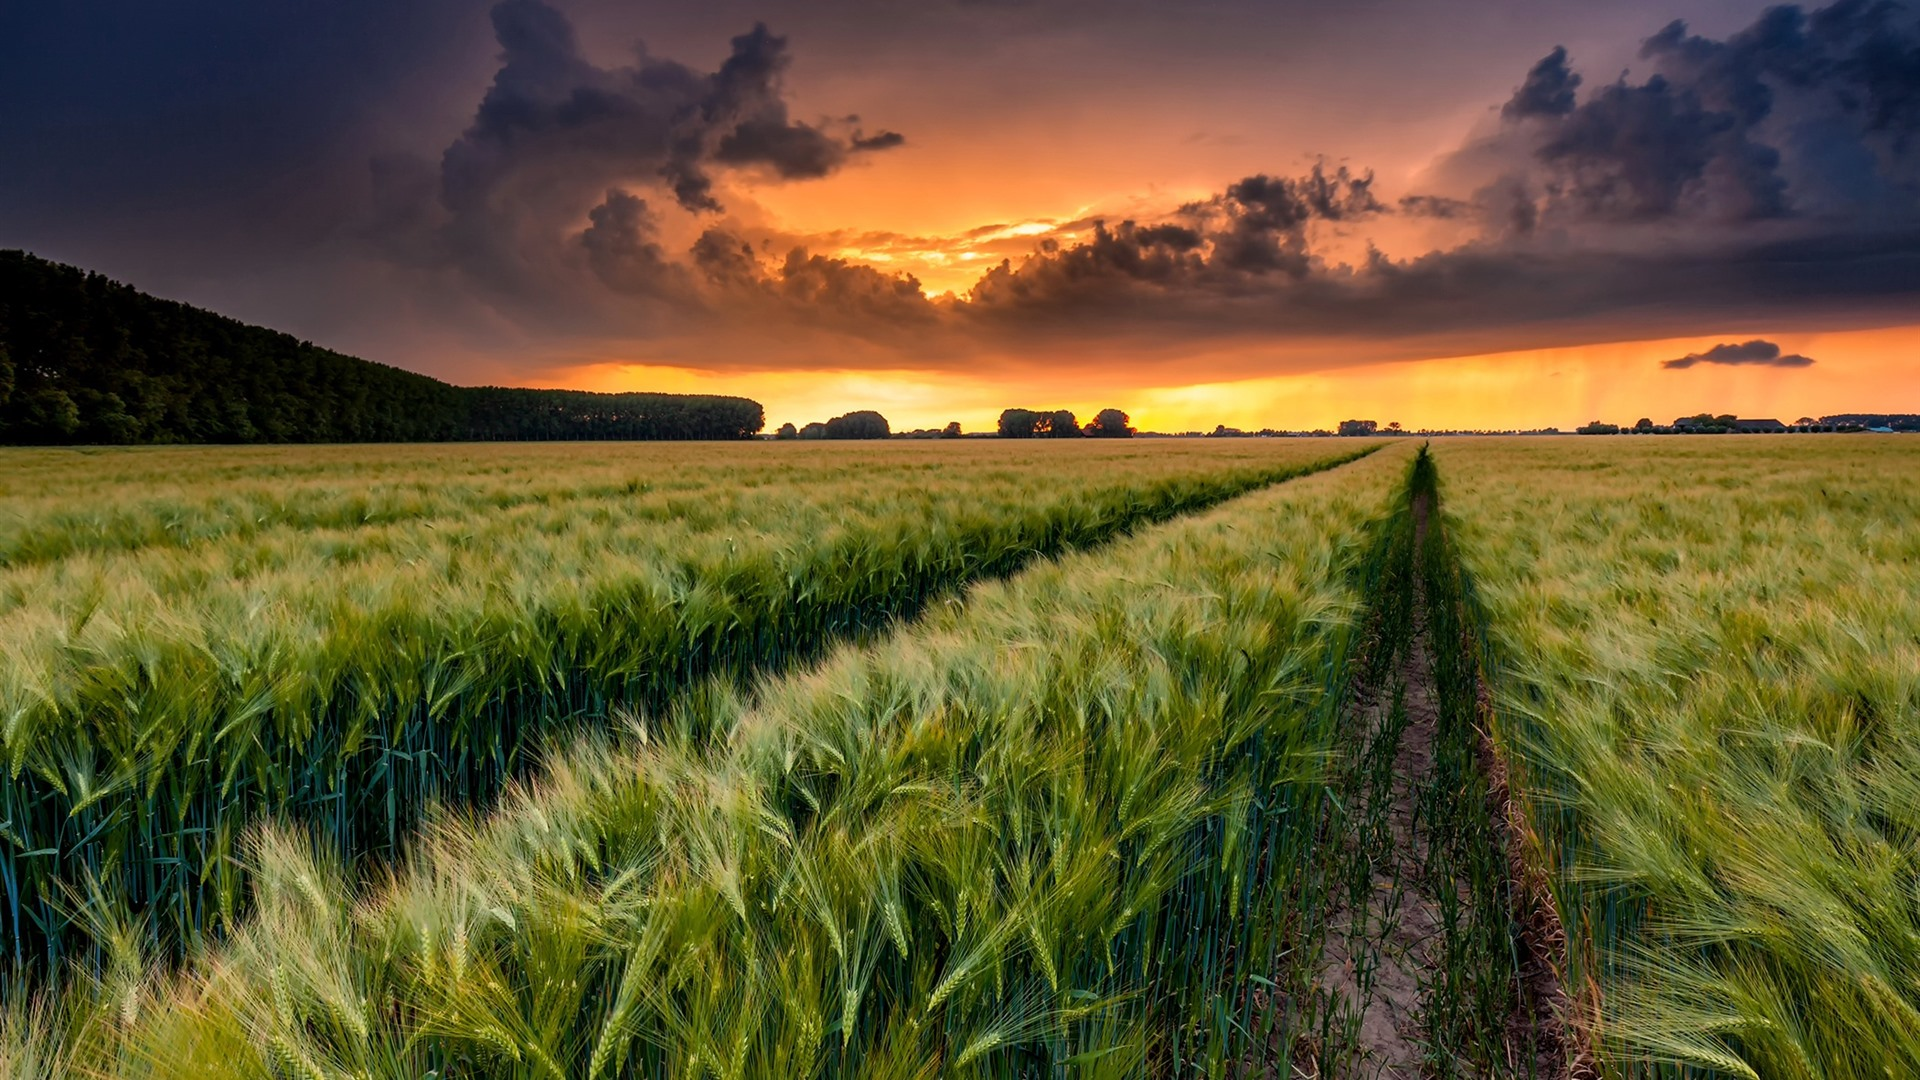 Wheat Fields Clouds Sunset Countryside 750x1334 Iphone 8